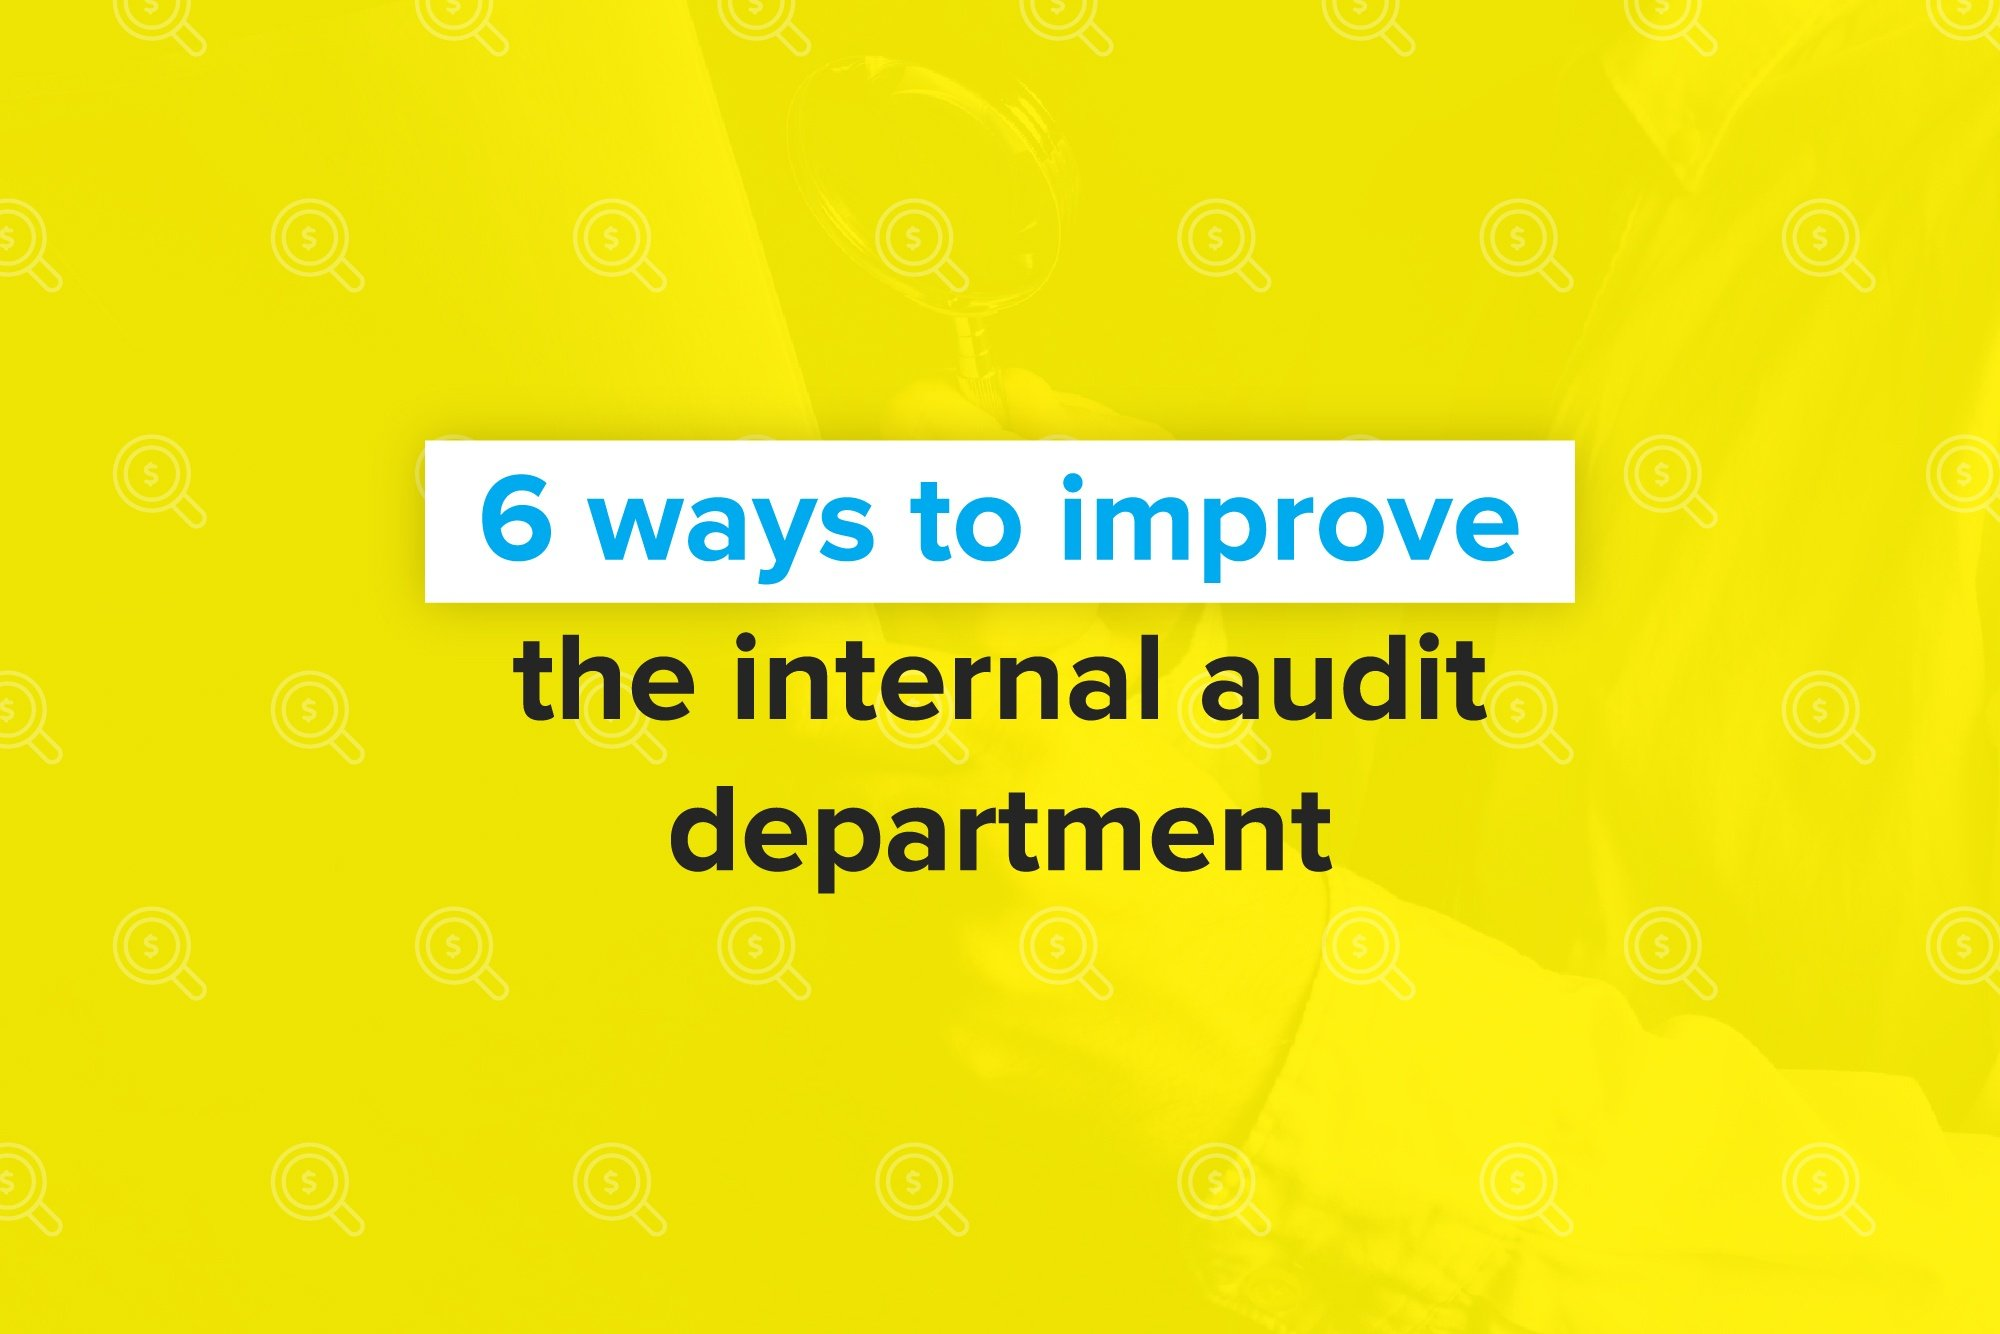 6ways-to-improve-internal-audit